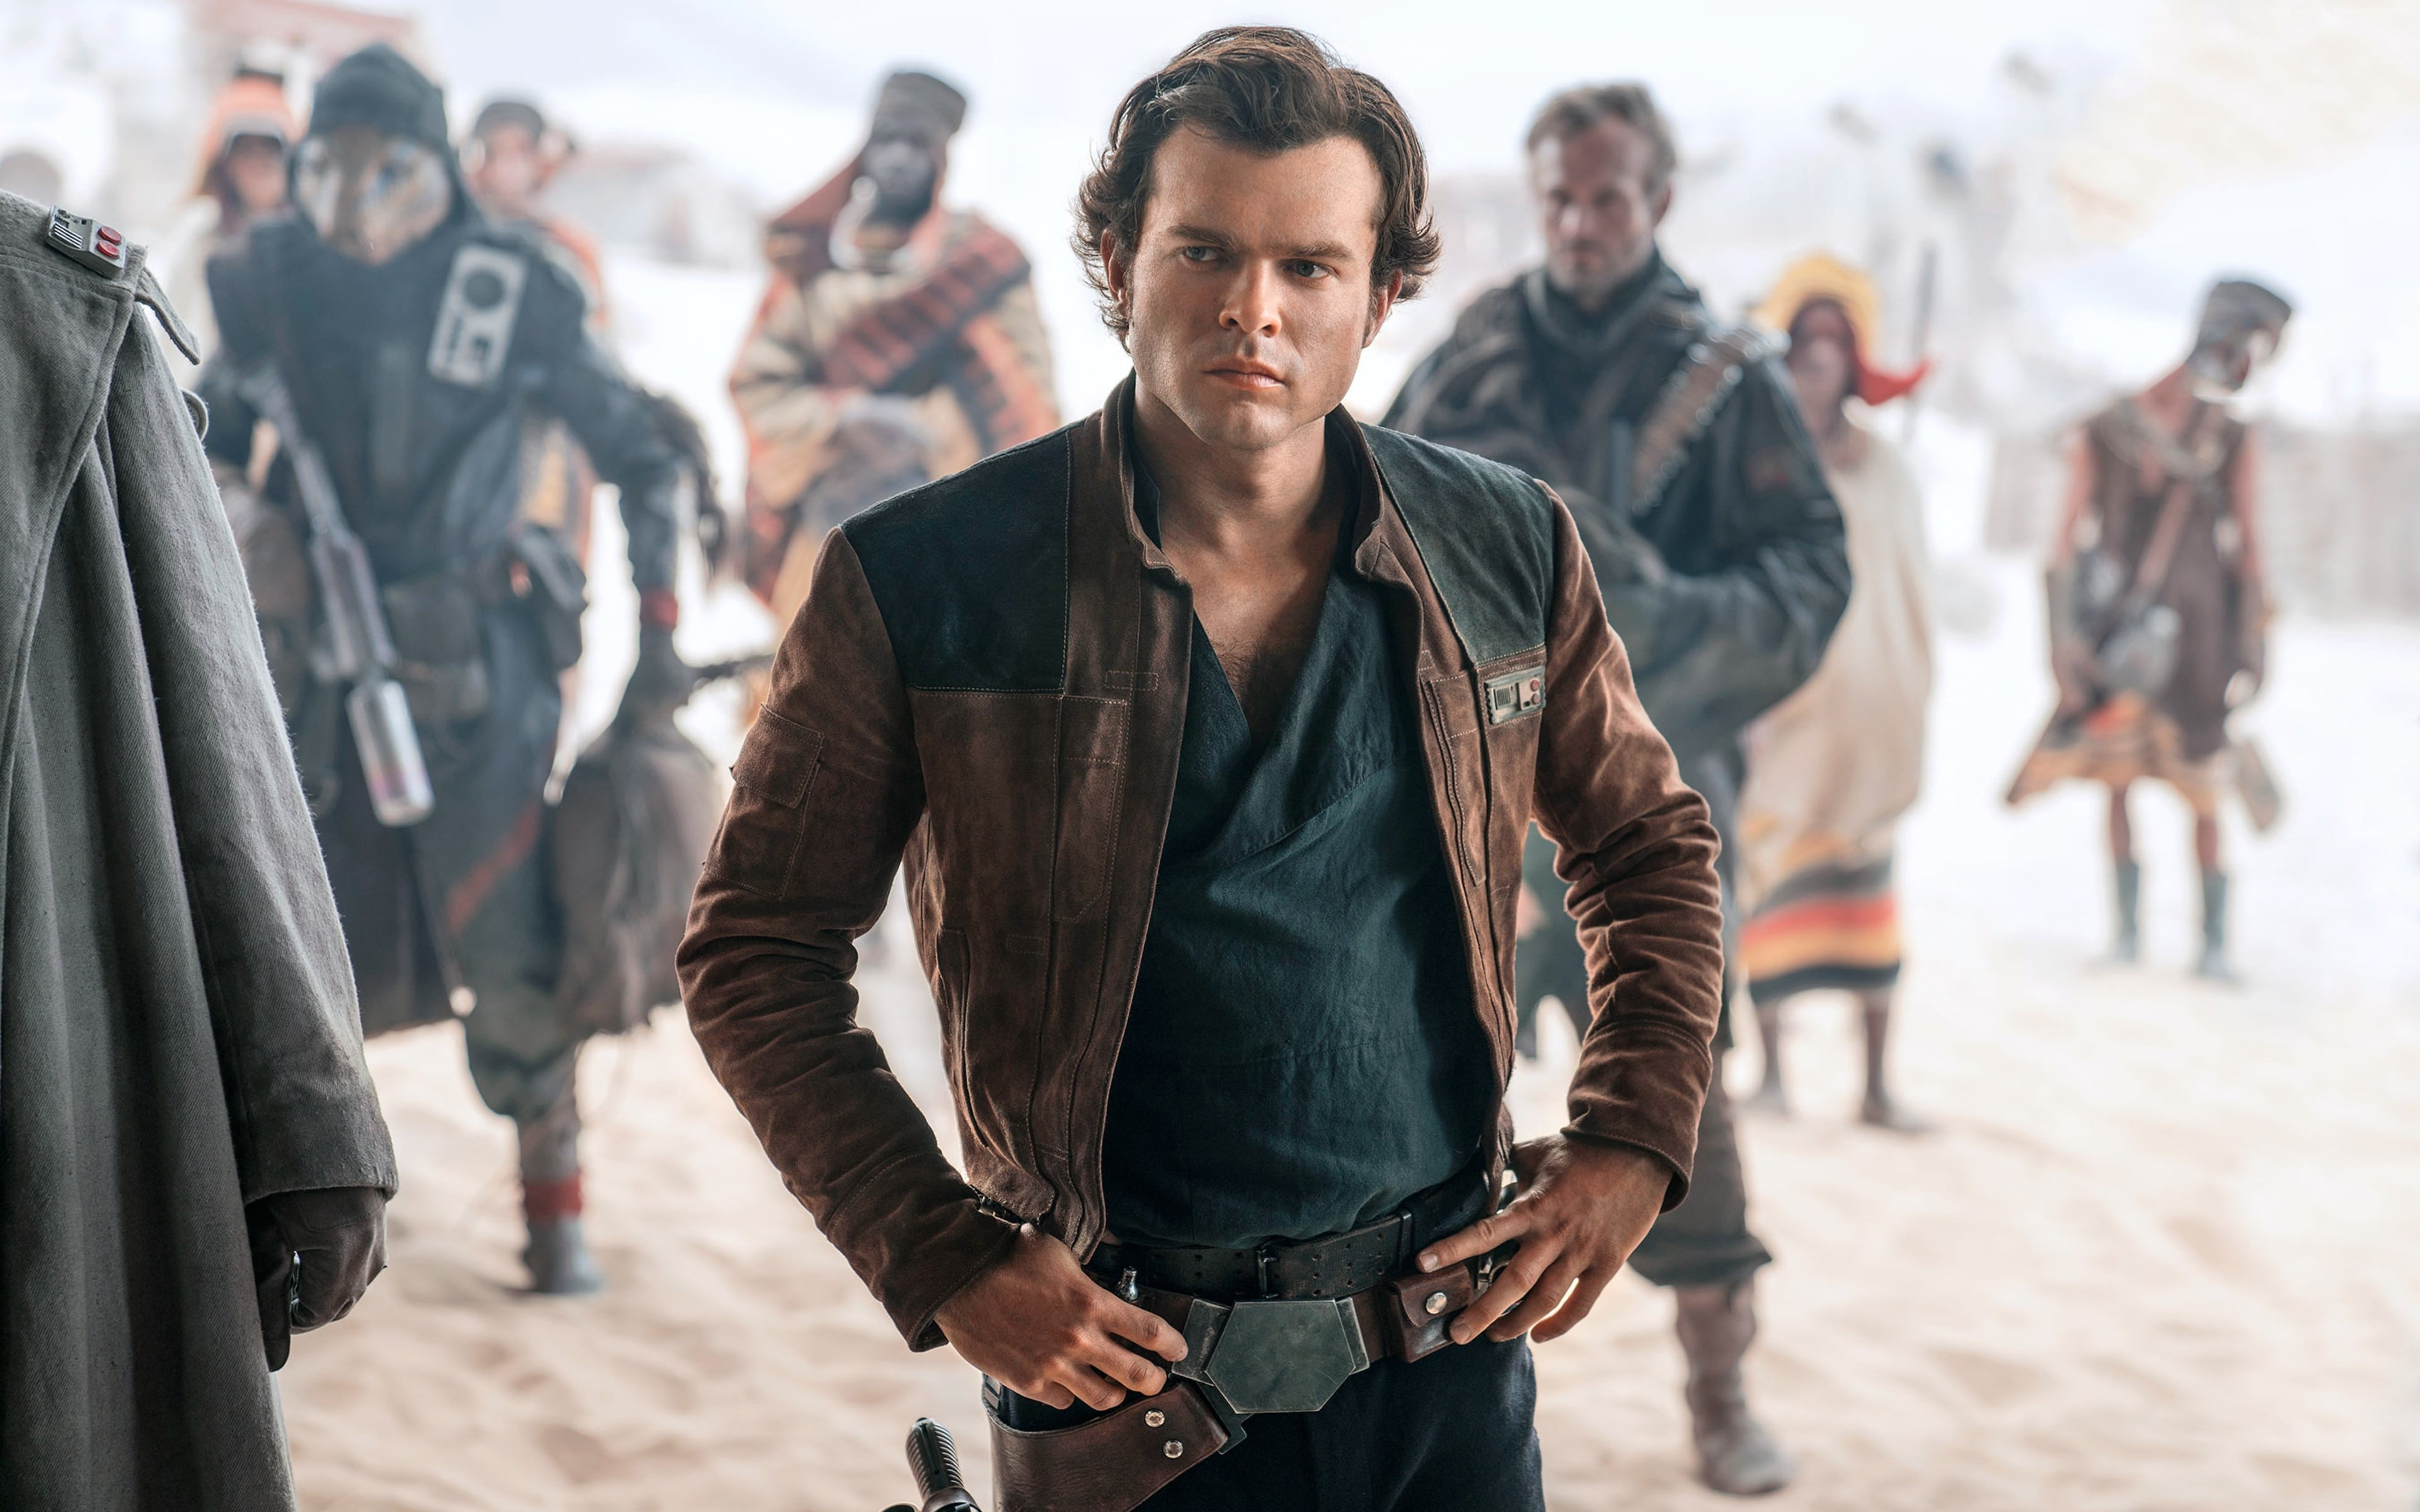 Solo A Star Wars Story Hd Wallpapers 7wallpapers Net